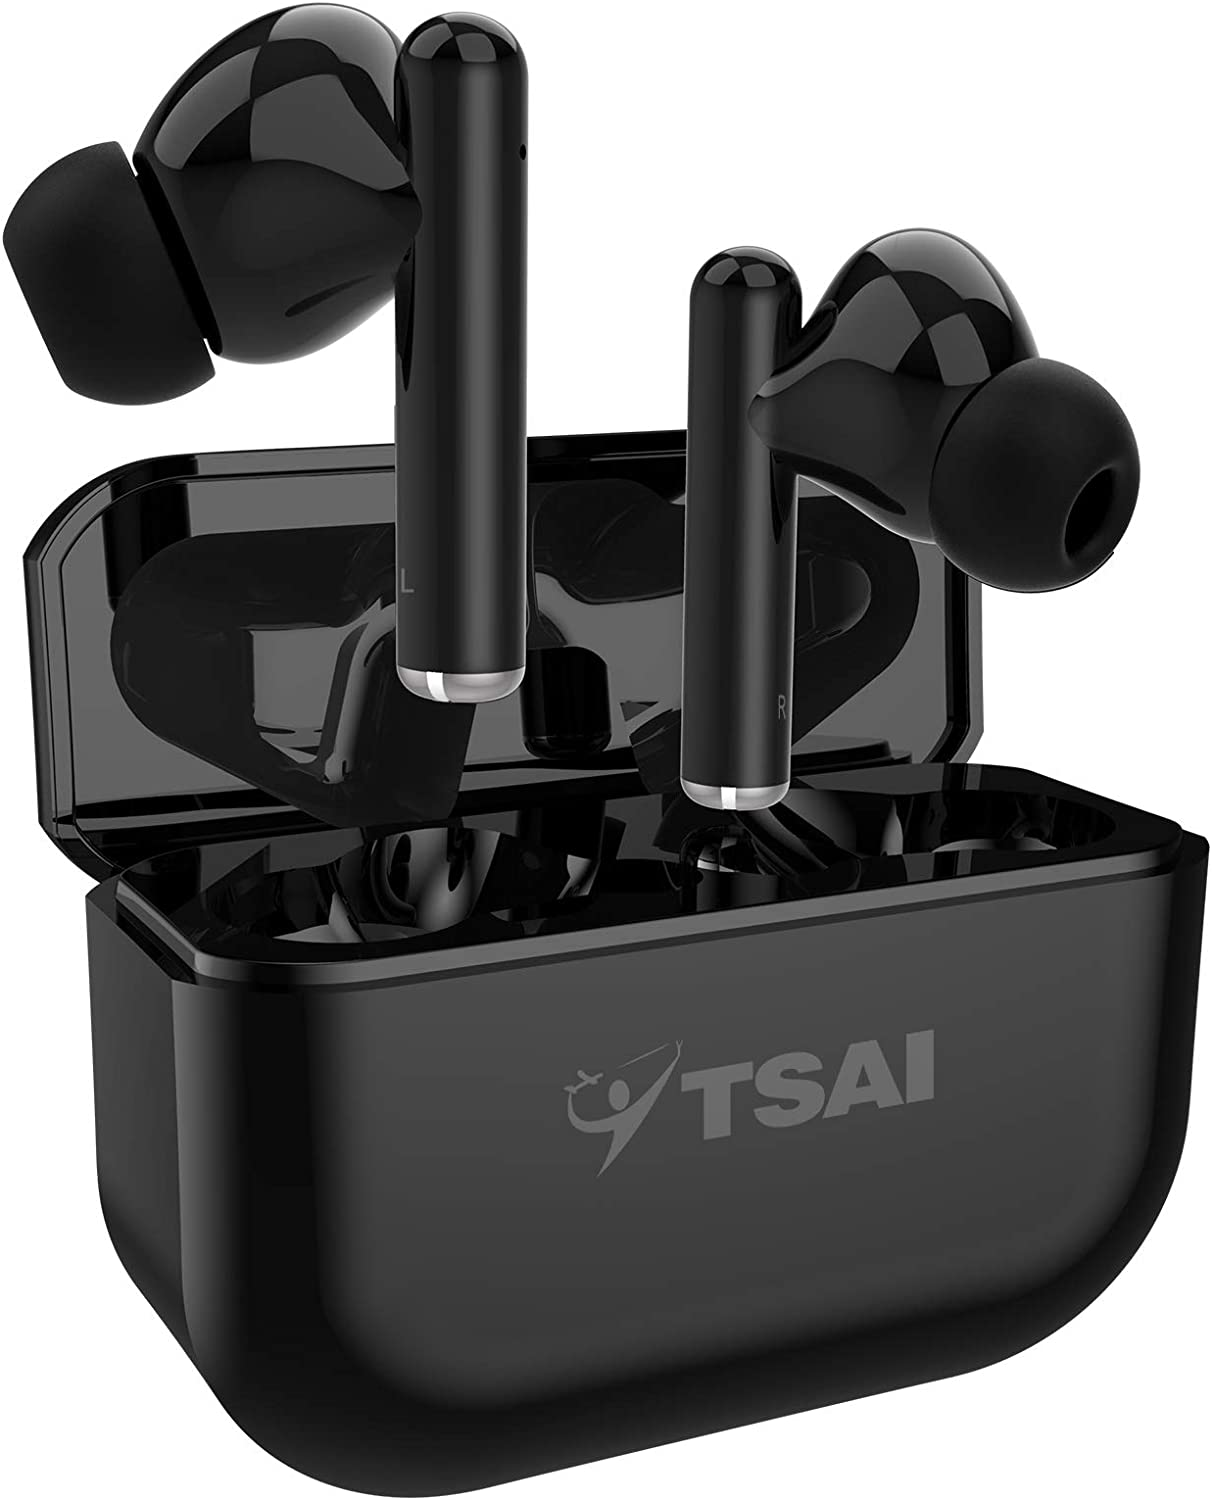 Wireless Earbuds, Bluetooth Earbuds with Microphone Touching Control Bass in-Ear TWS Stereo Headphones, True Wireless Bluetooth Earbuds with Charging Case 30 Hours Playback for iPhone and Android